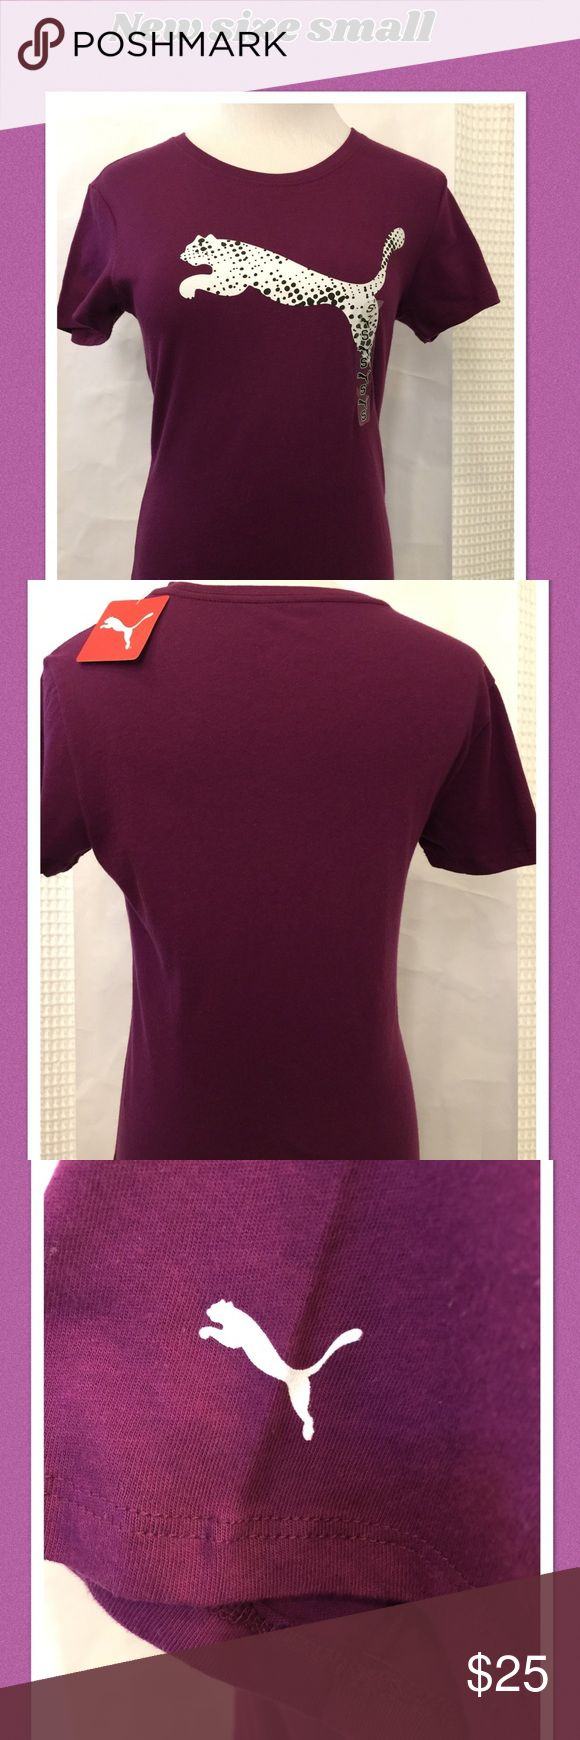 """NWT PUMA women purple T-Shirt Original Soft purple women tee size small Front logo Tag and sticker still on Never used In my closet  Would like to sell for my new Poshmark friend Length 23"""" Bust 33"""" Waist 27"""" Puma Tops Tees - Short Sleeve"""